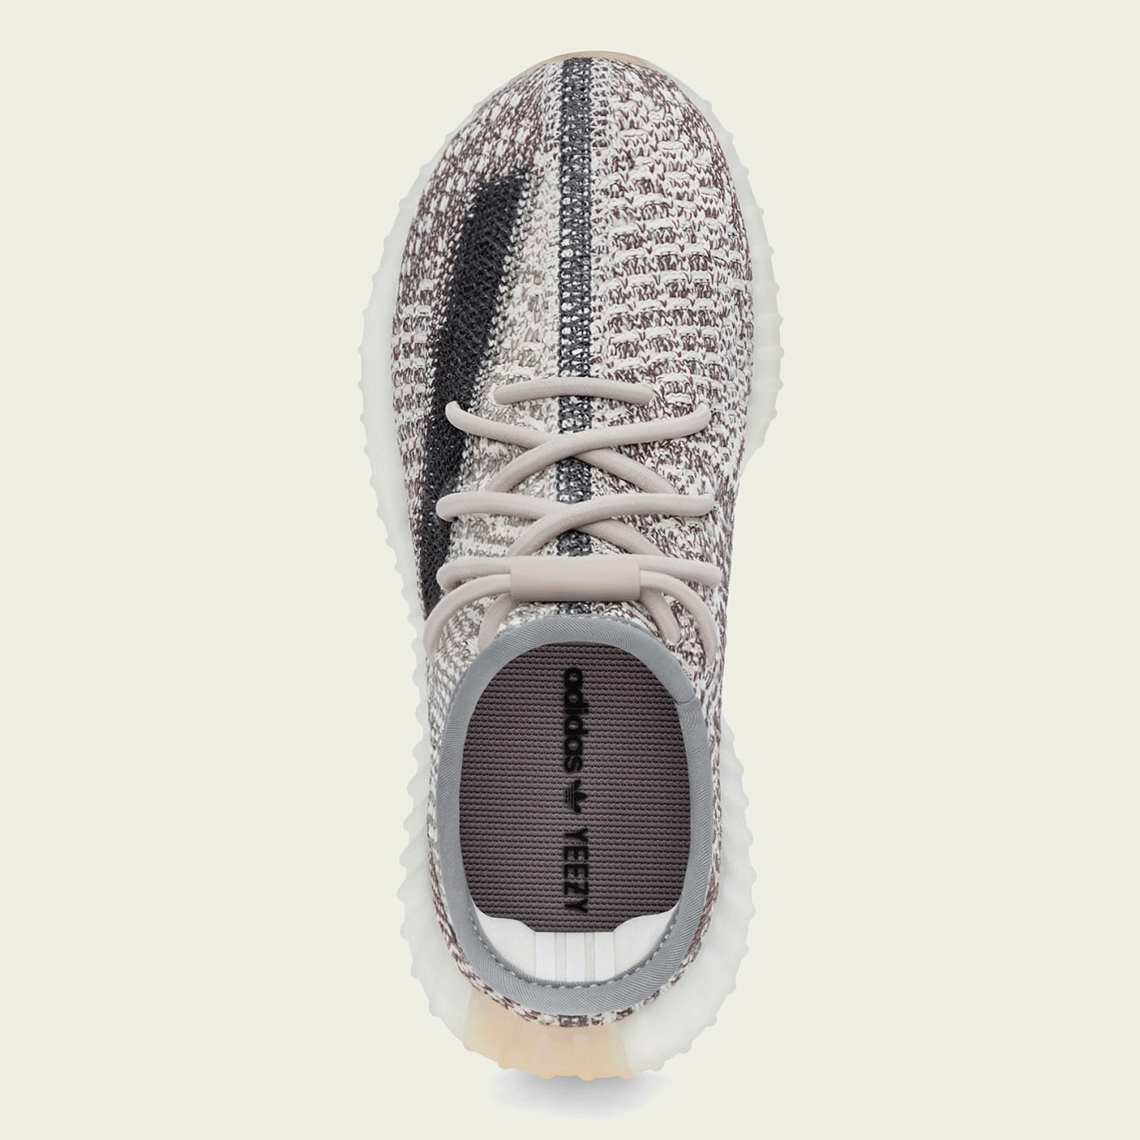 yeezy at nordstrom buy clothes shoes online